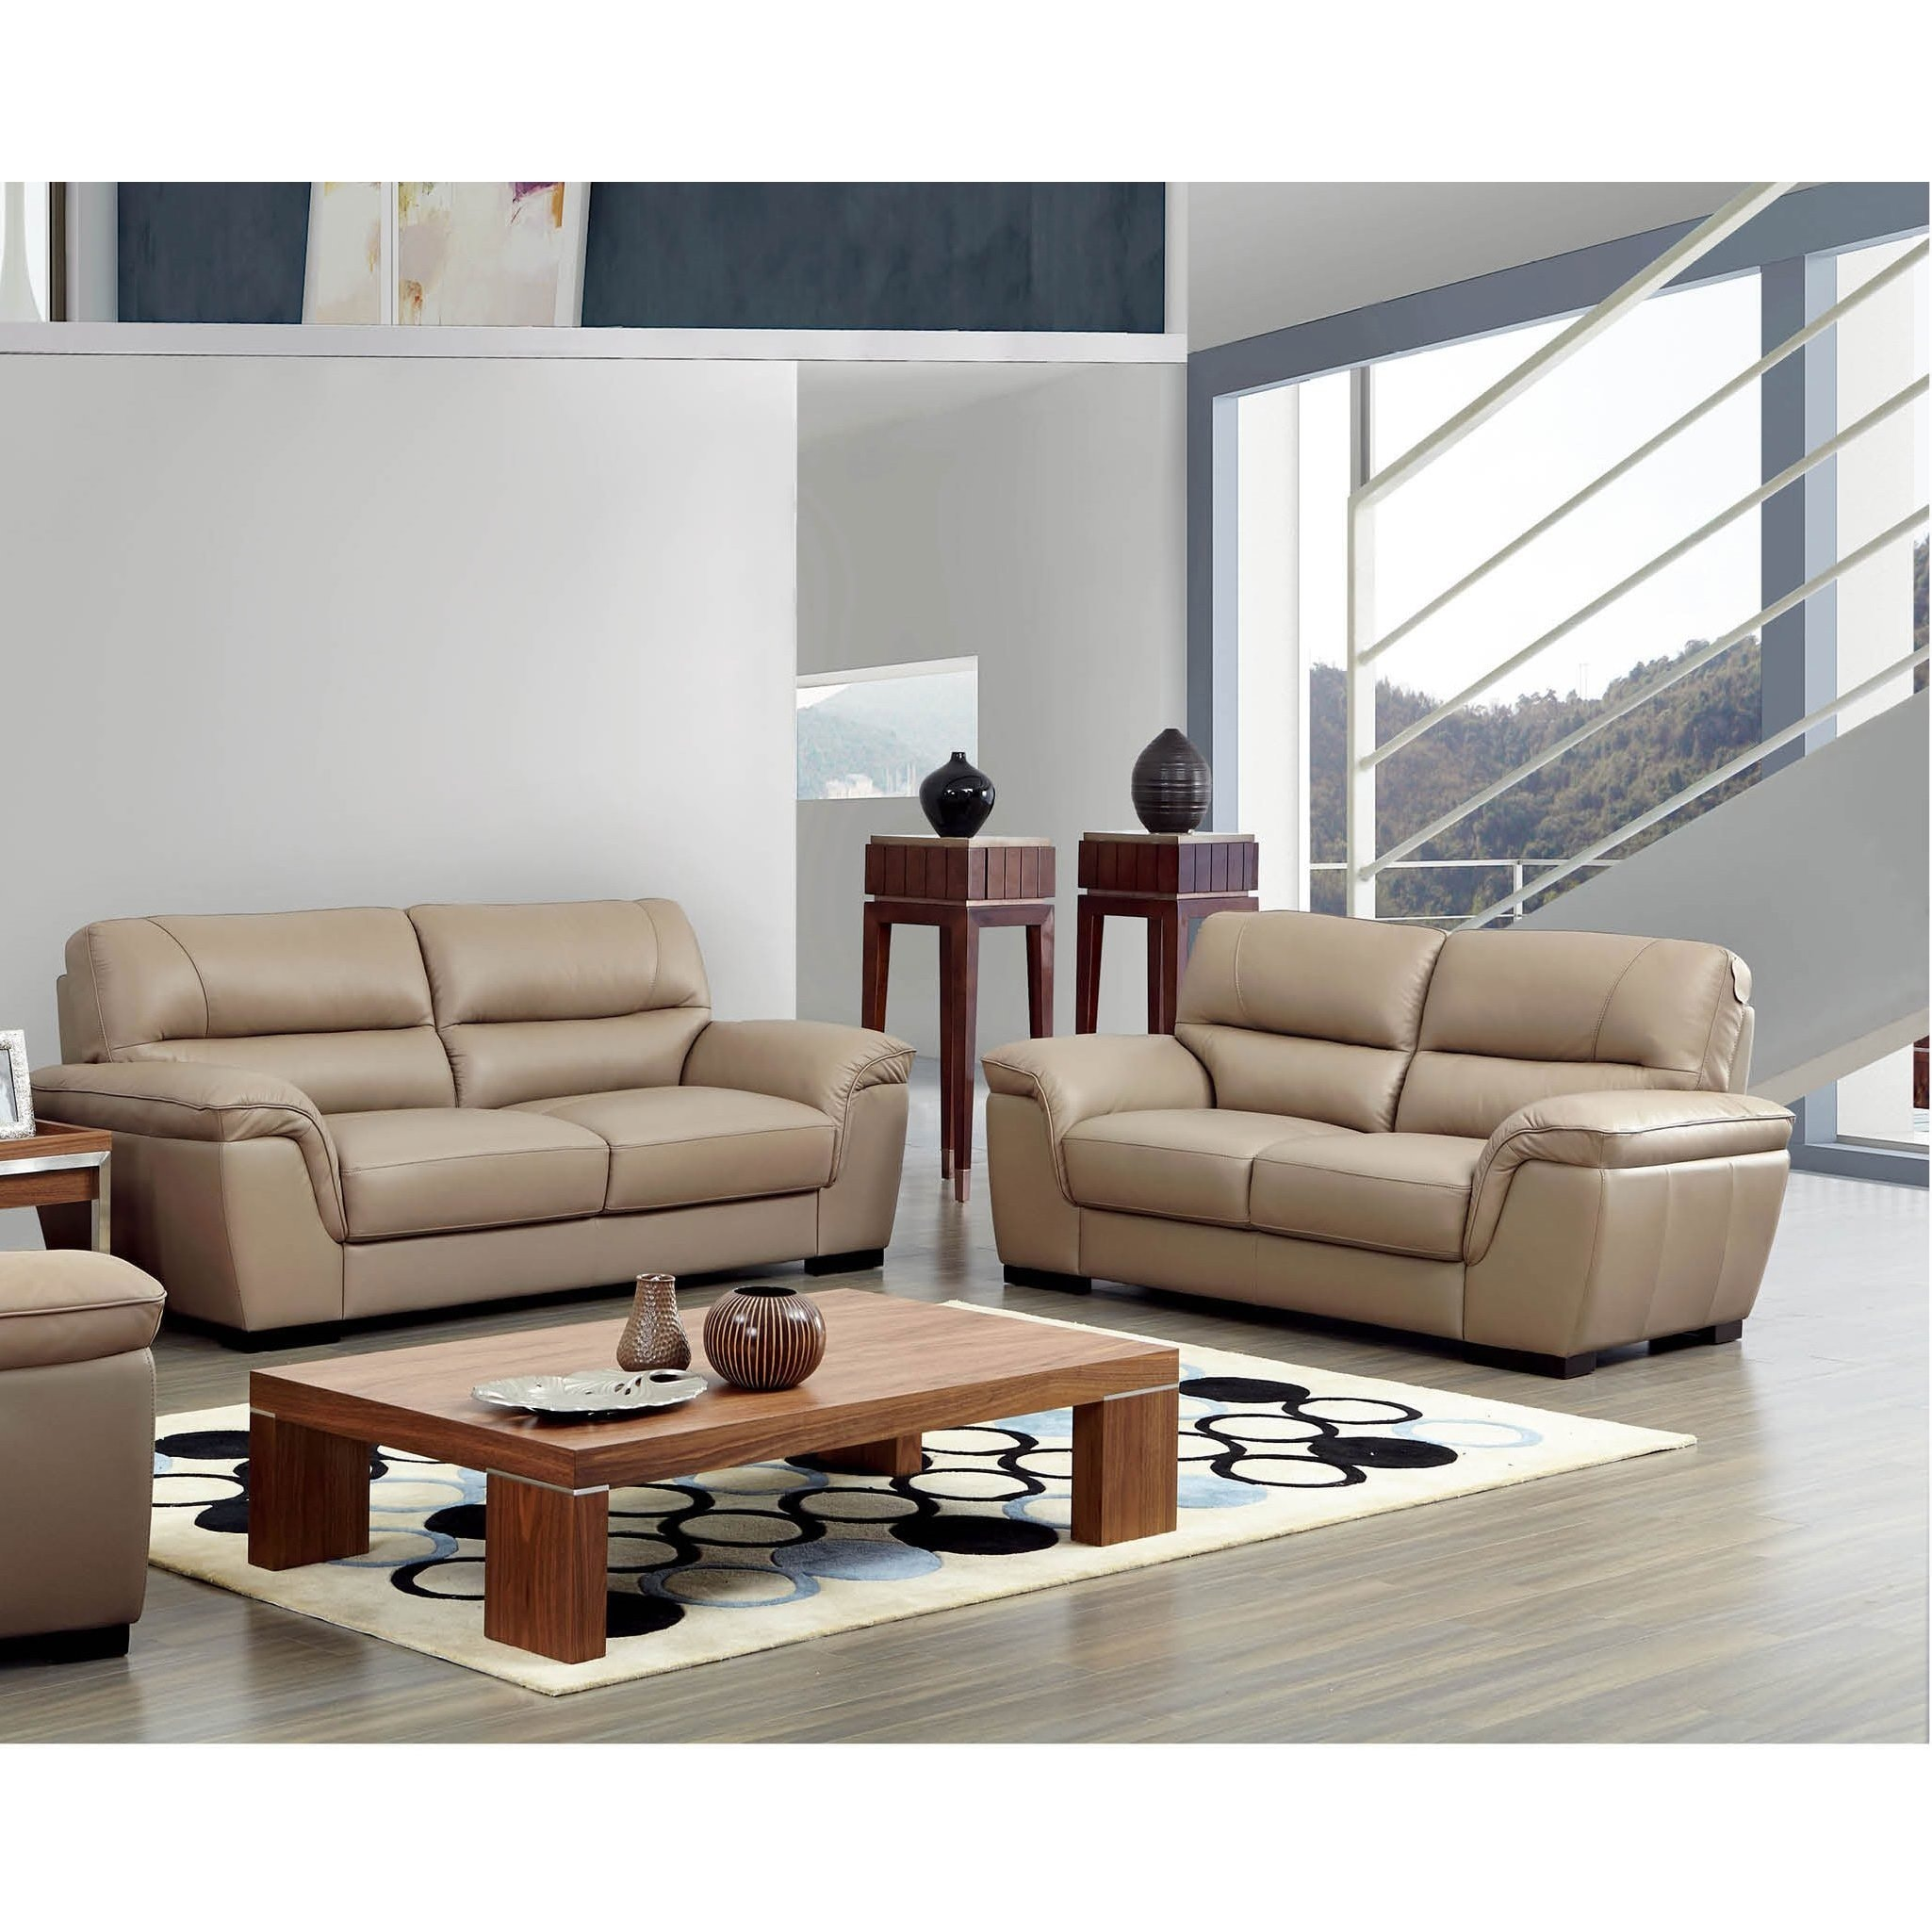 Unbranded Luca Home Contemporary Beige Sofa and Loveseat ...